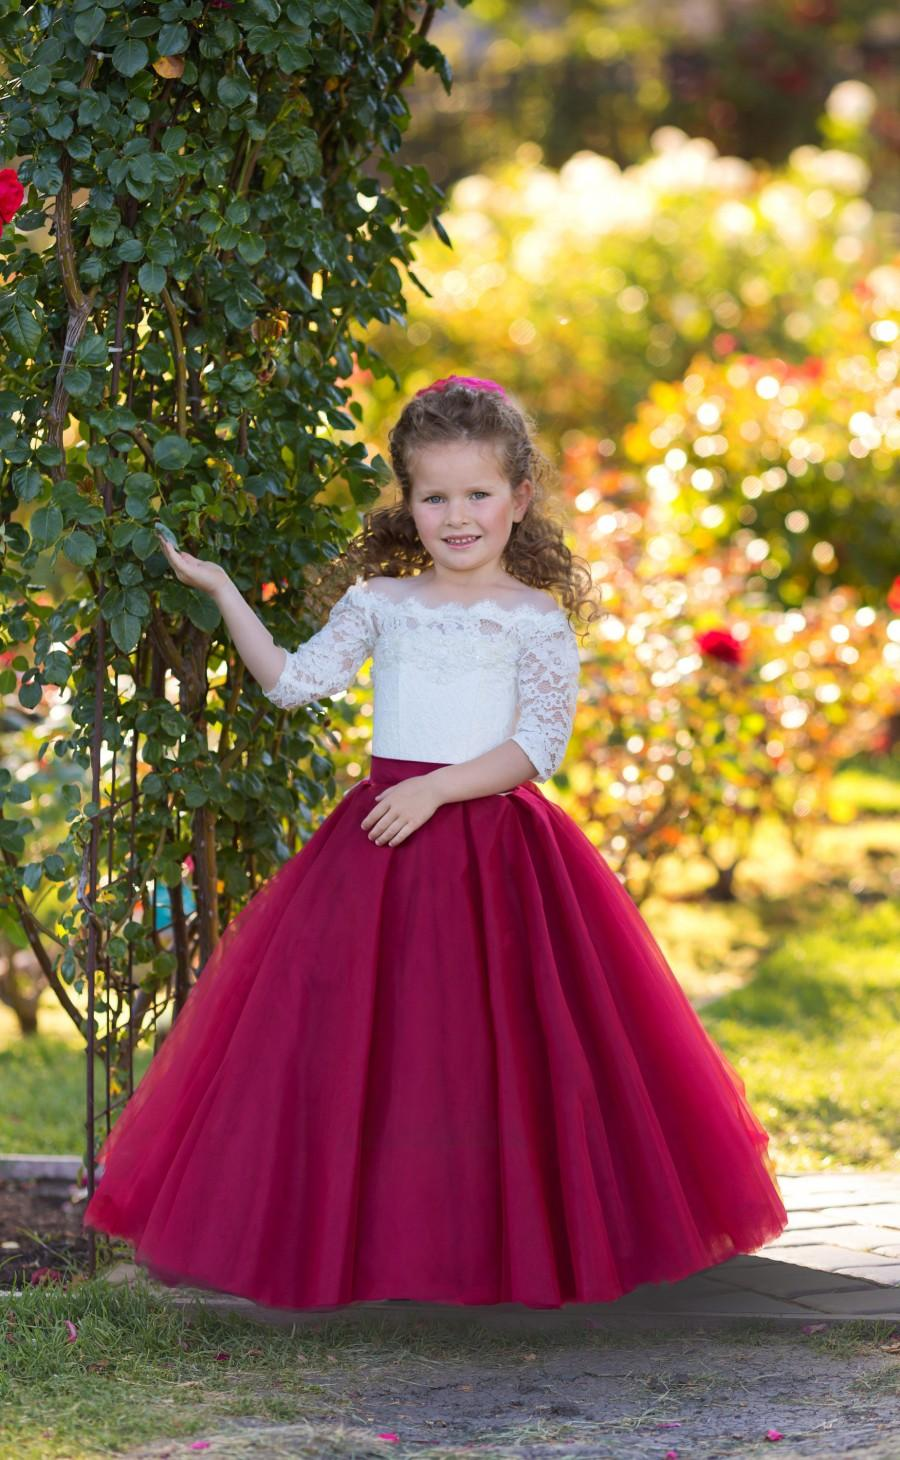 bd344c947a818 Flower Girl Dress Burgundy Wedding A-line Lace Girls Dress Ivory ...